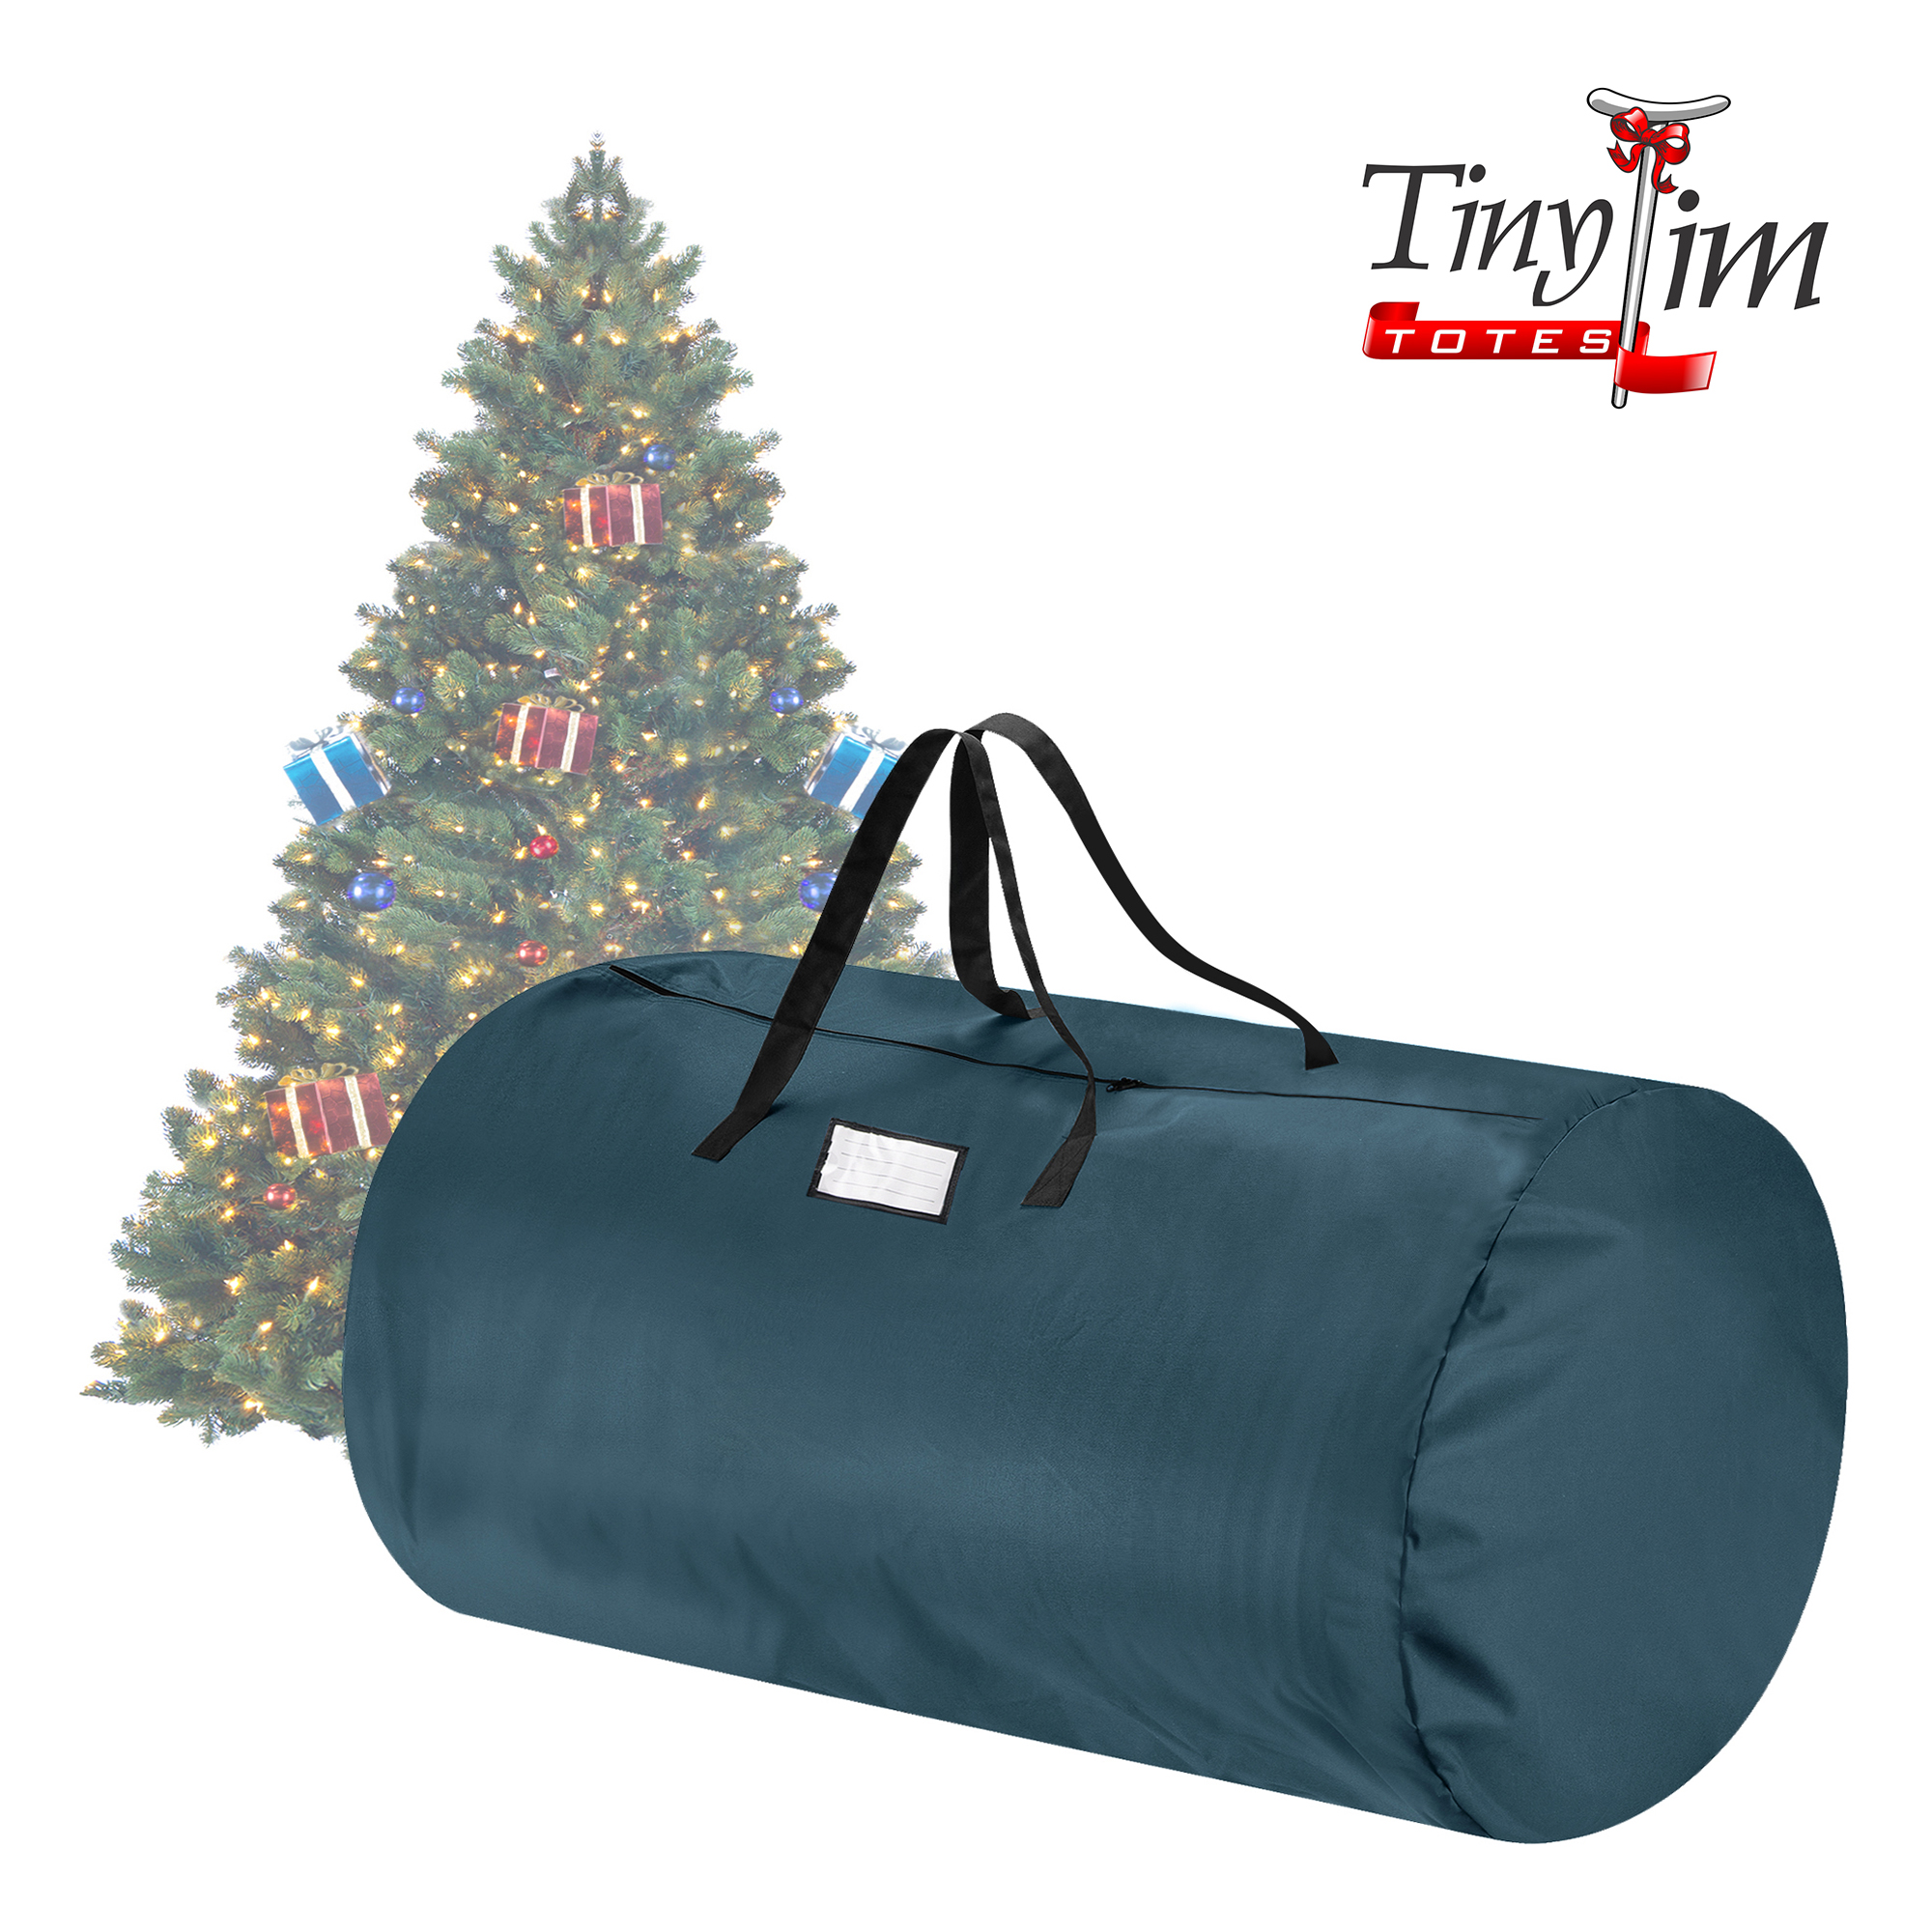 Tiny Tim Totes | Canvas Christmas Tree Storage Bag | Extra Large For 9 Foot Tree | Green